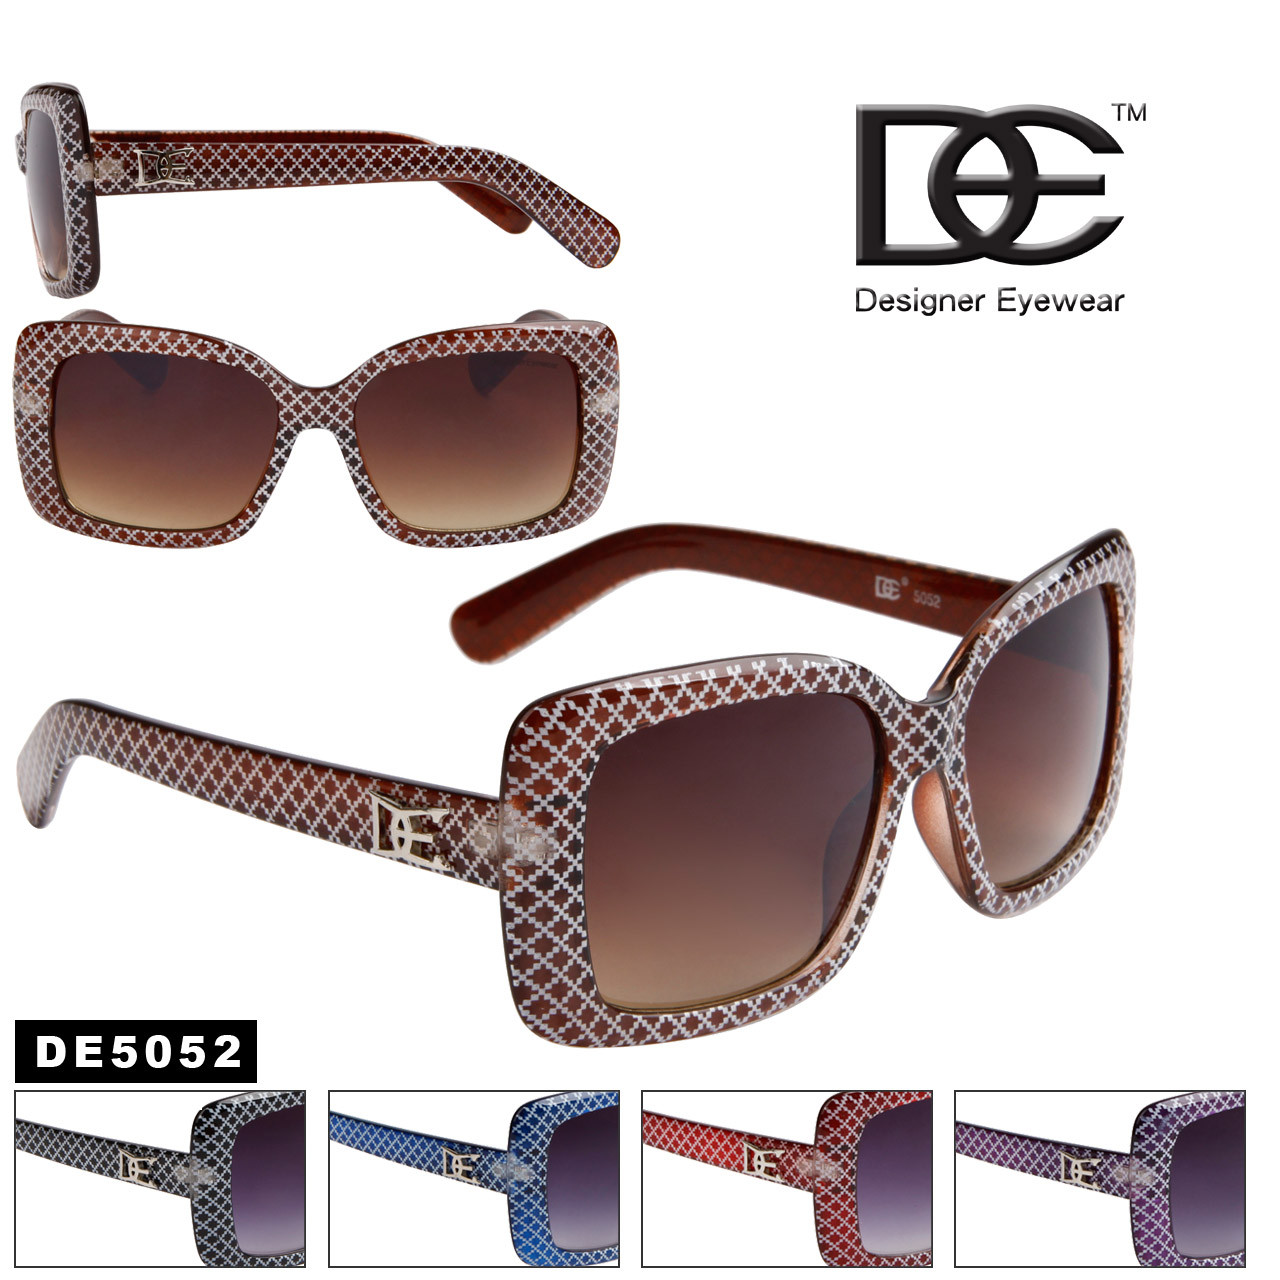 Wholesale DE™ Designer Sunglasses - DE5052